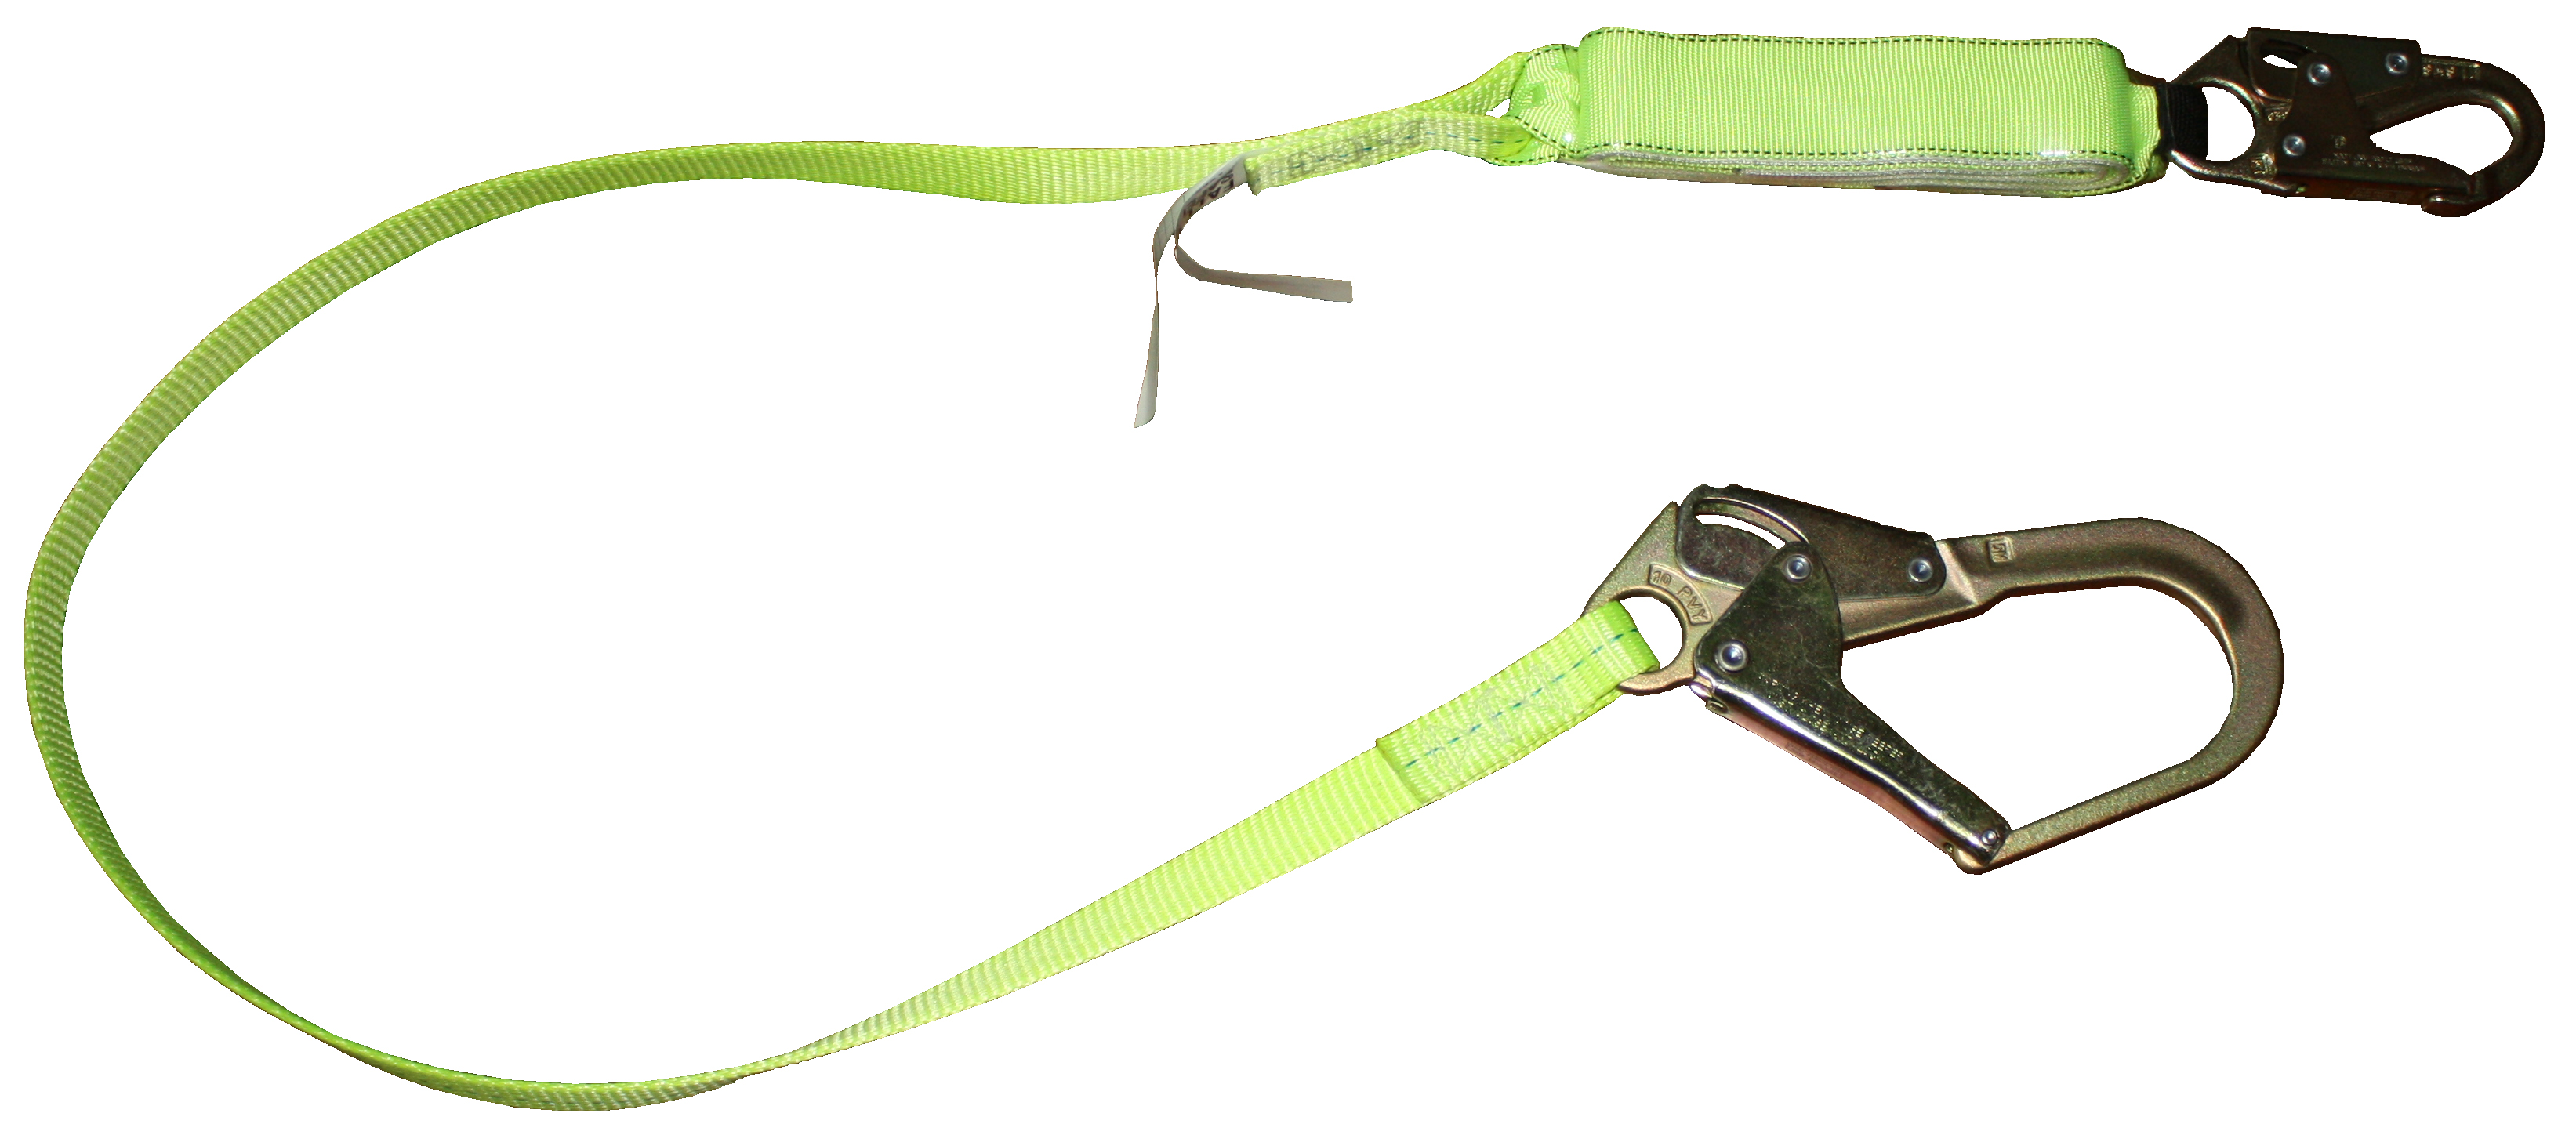 FallSafe 6' Shock Lanyard with Rebar Hook